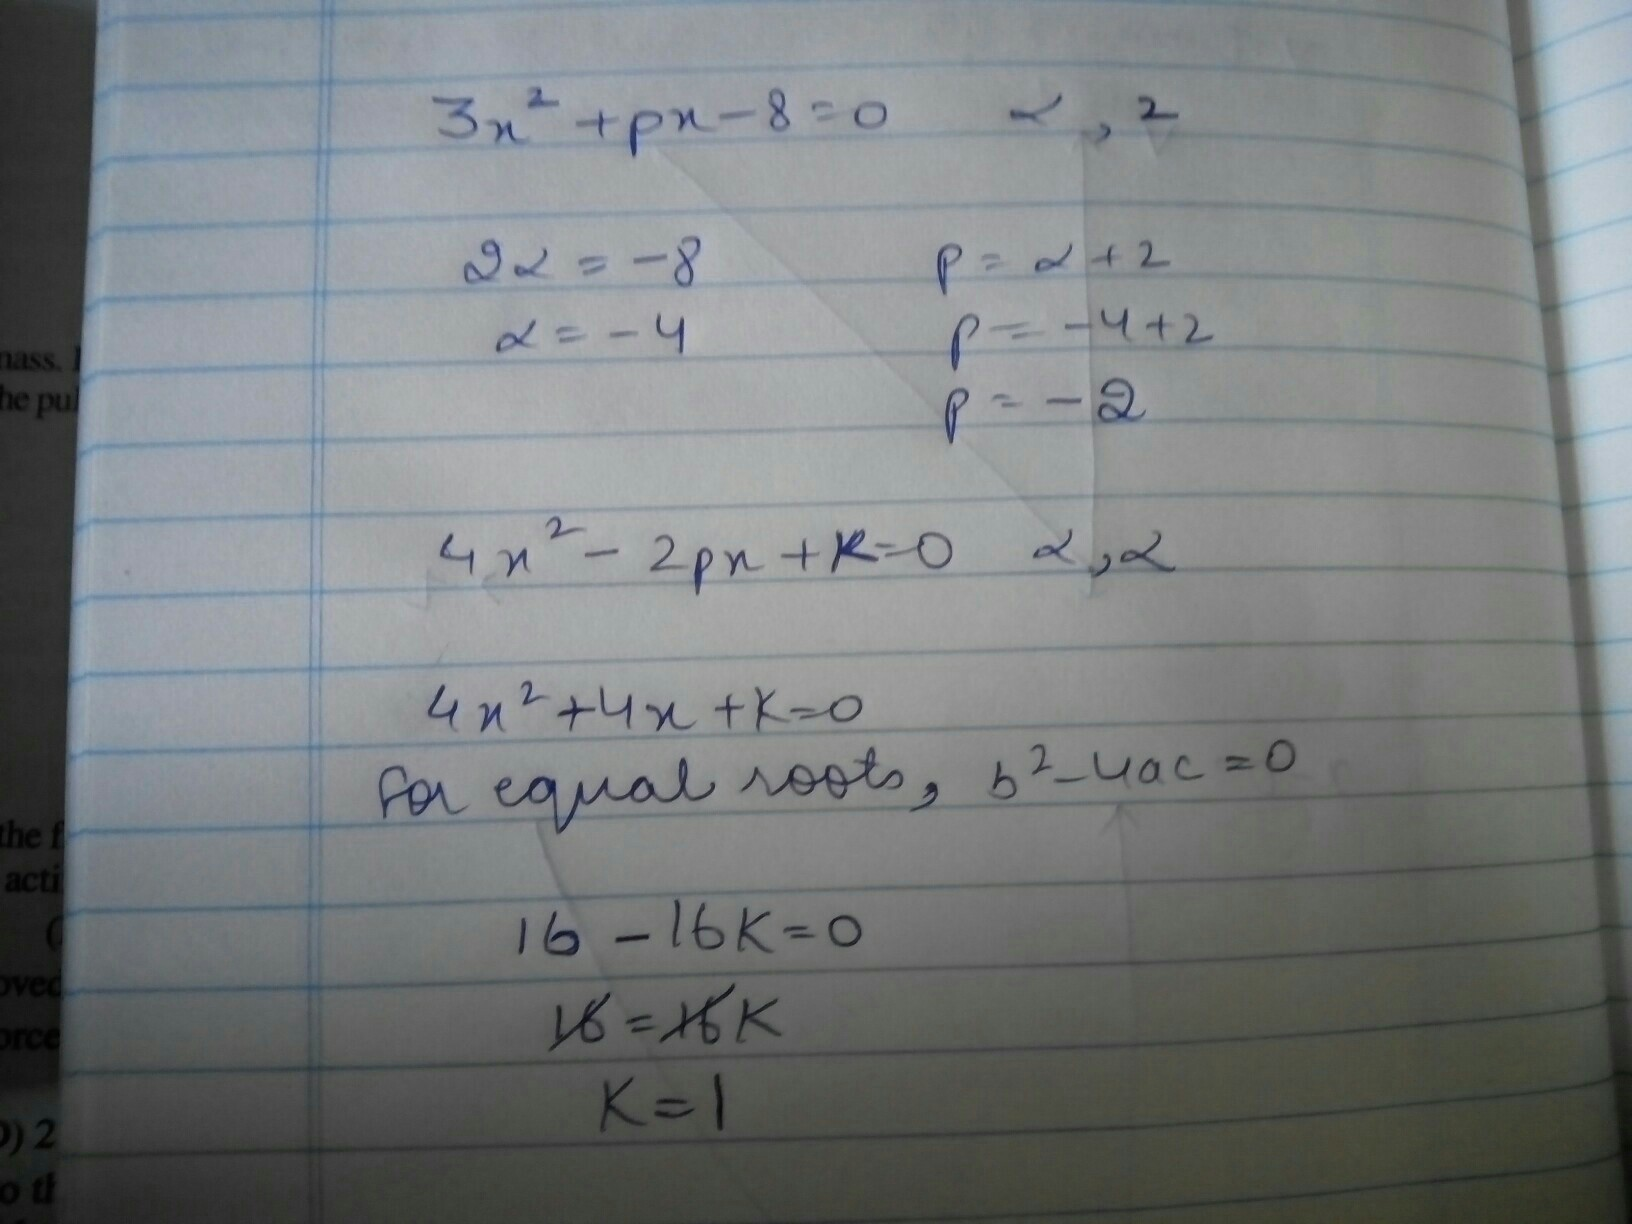 If 2 Is A Root Of The Quadratic Equation 3x2 + Px − 8 = 0